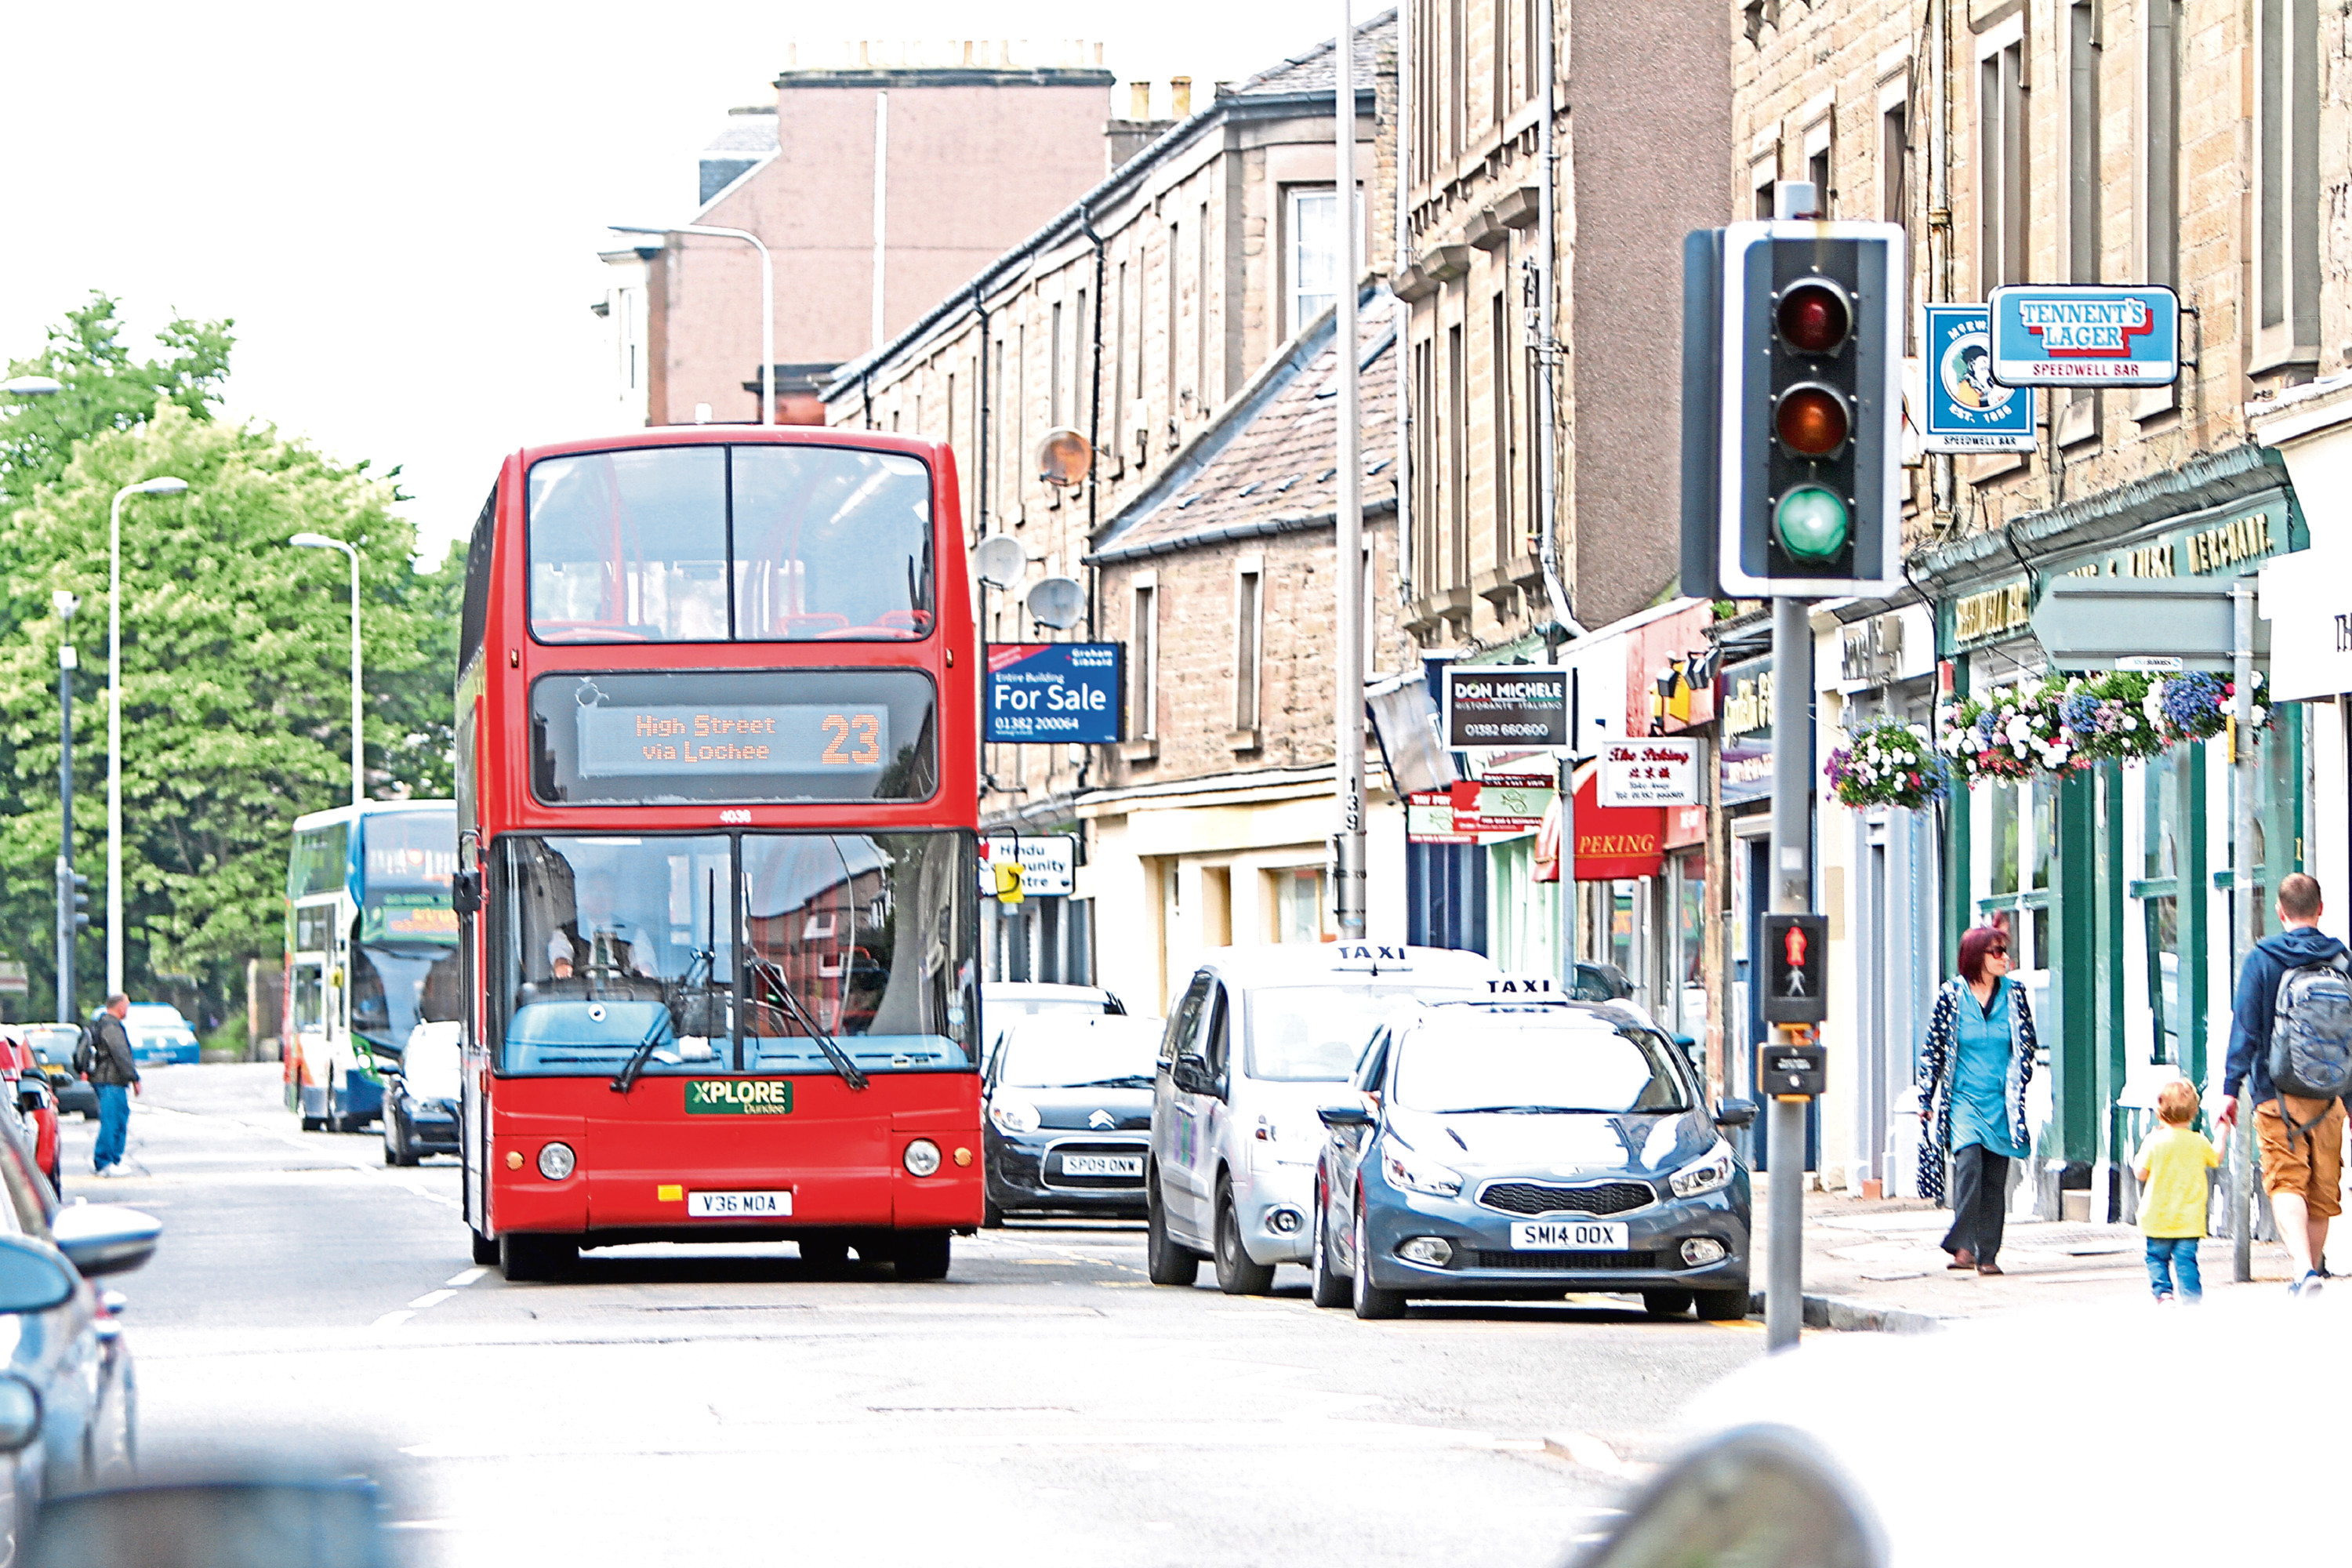 Xplore Dundee has brought in drivers from Birmingham to try to ease ongoing staffing issues.